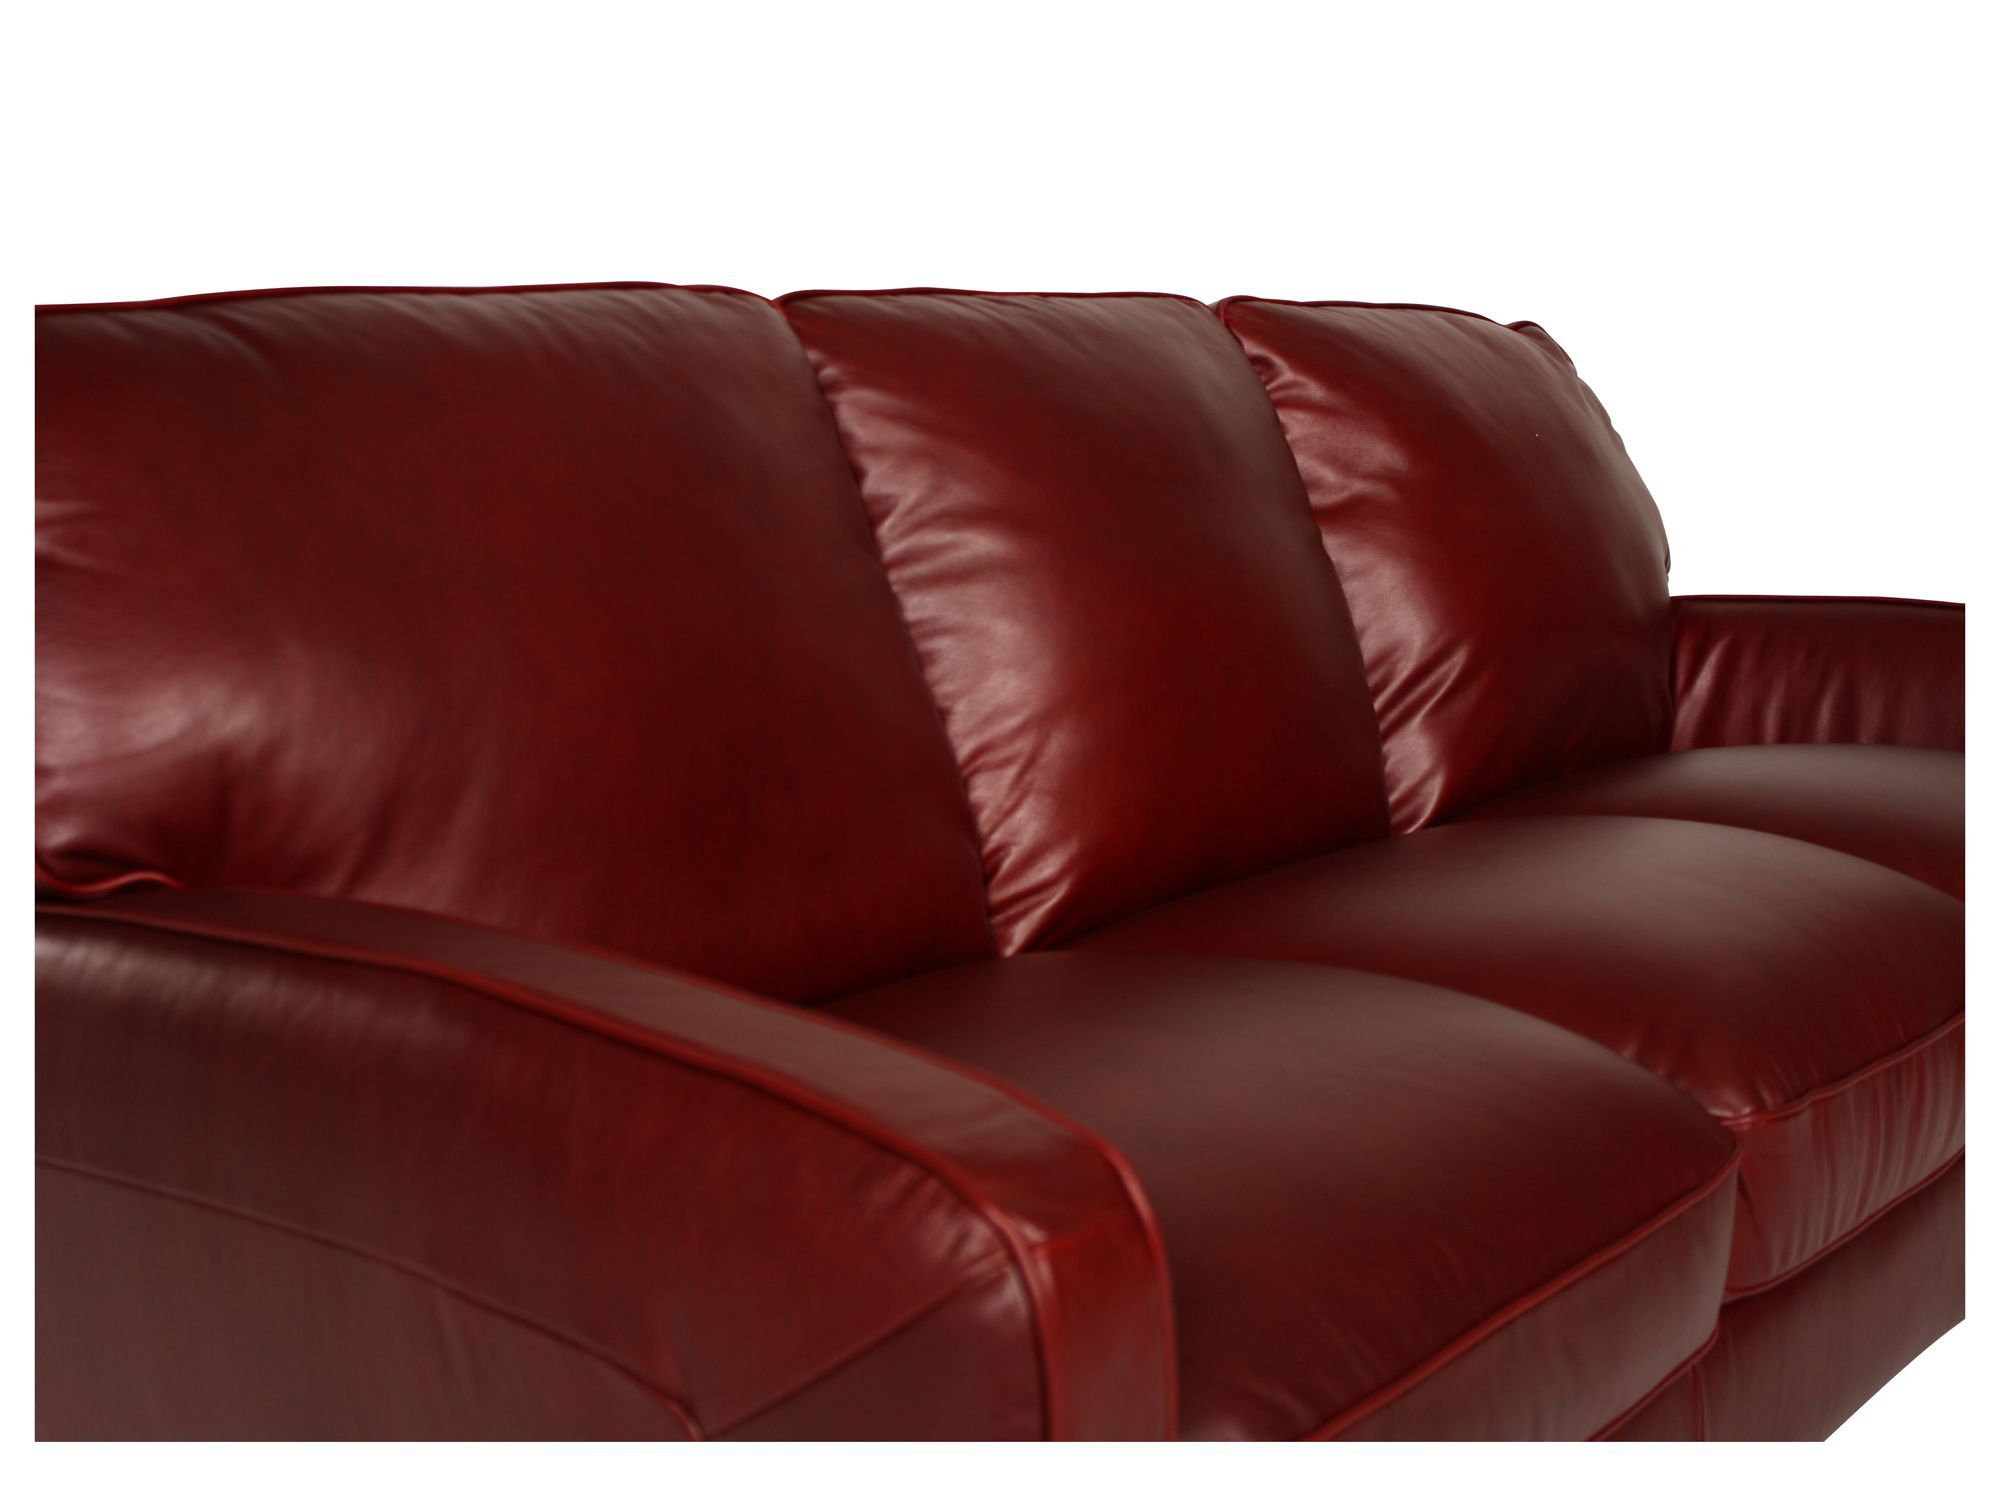 Natuzzi Deep Red Leather Sofa Shades Of Grey Room Accent Chairs In Lighter W Turquoise Pillows